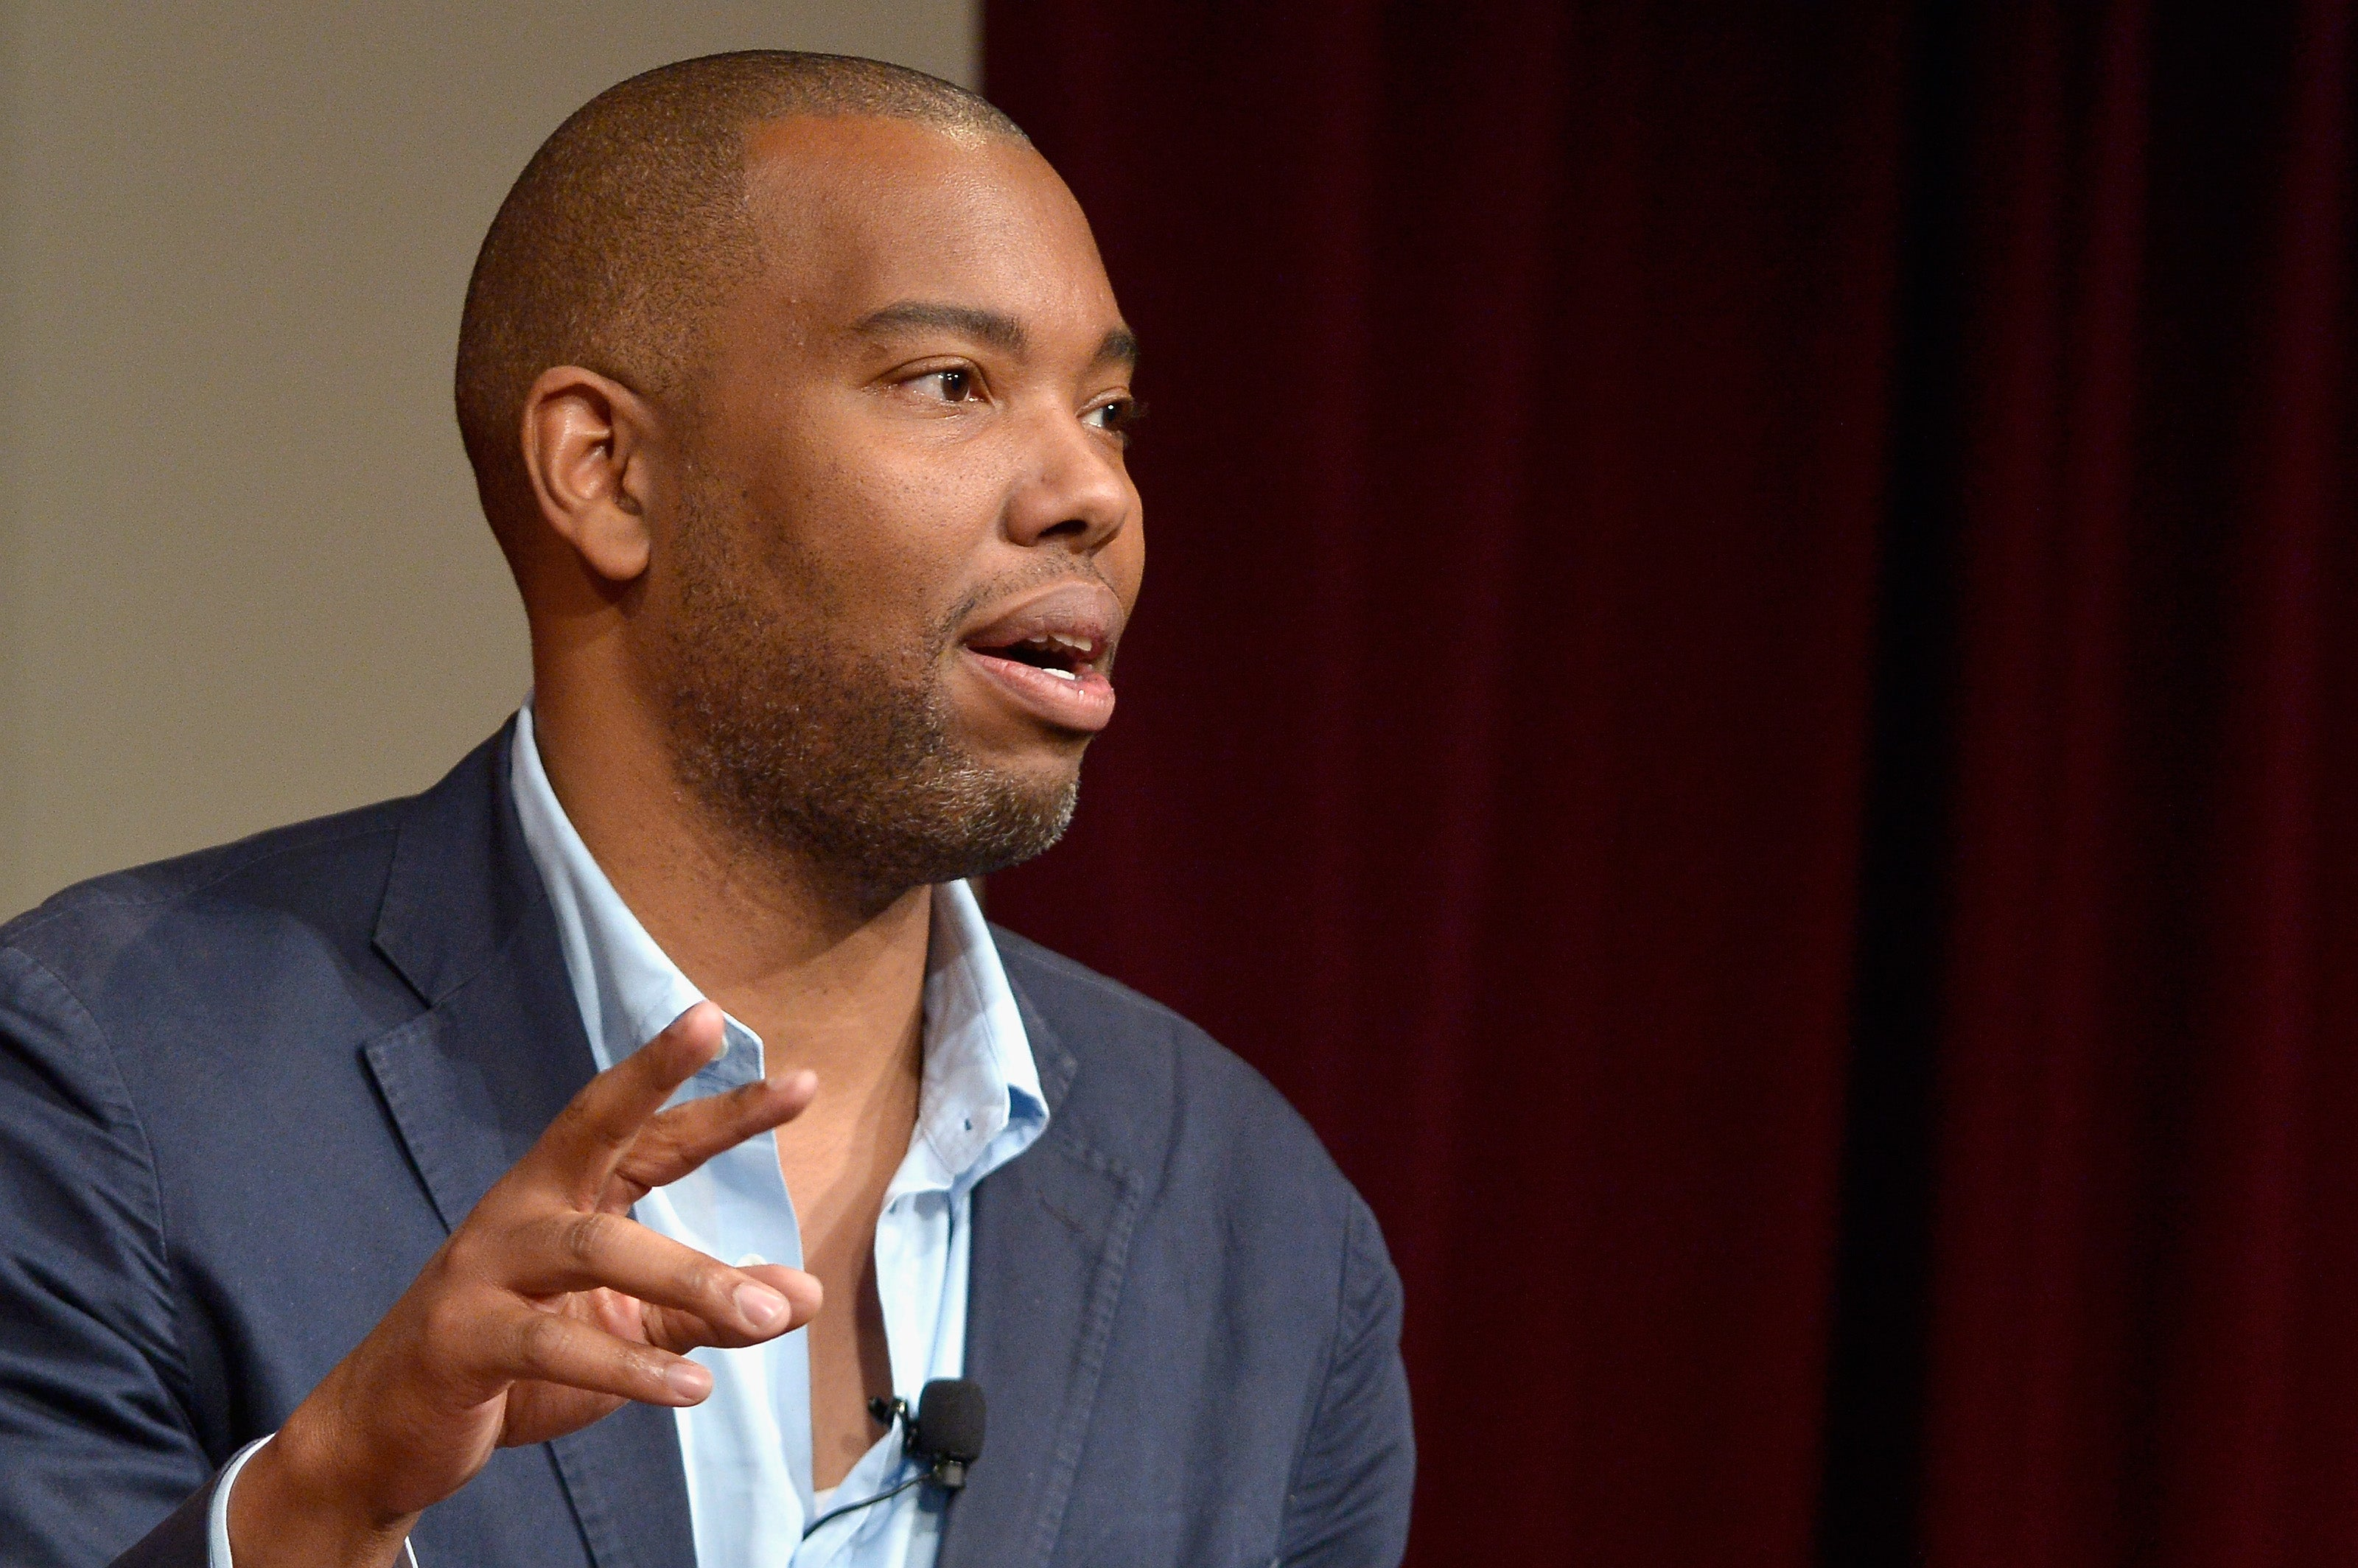 Ta-Nehisi Coates Is Hosting His Book At Black Establishments For This Reason